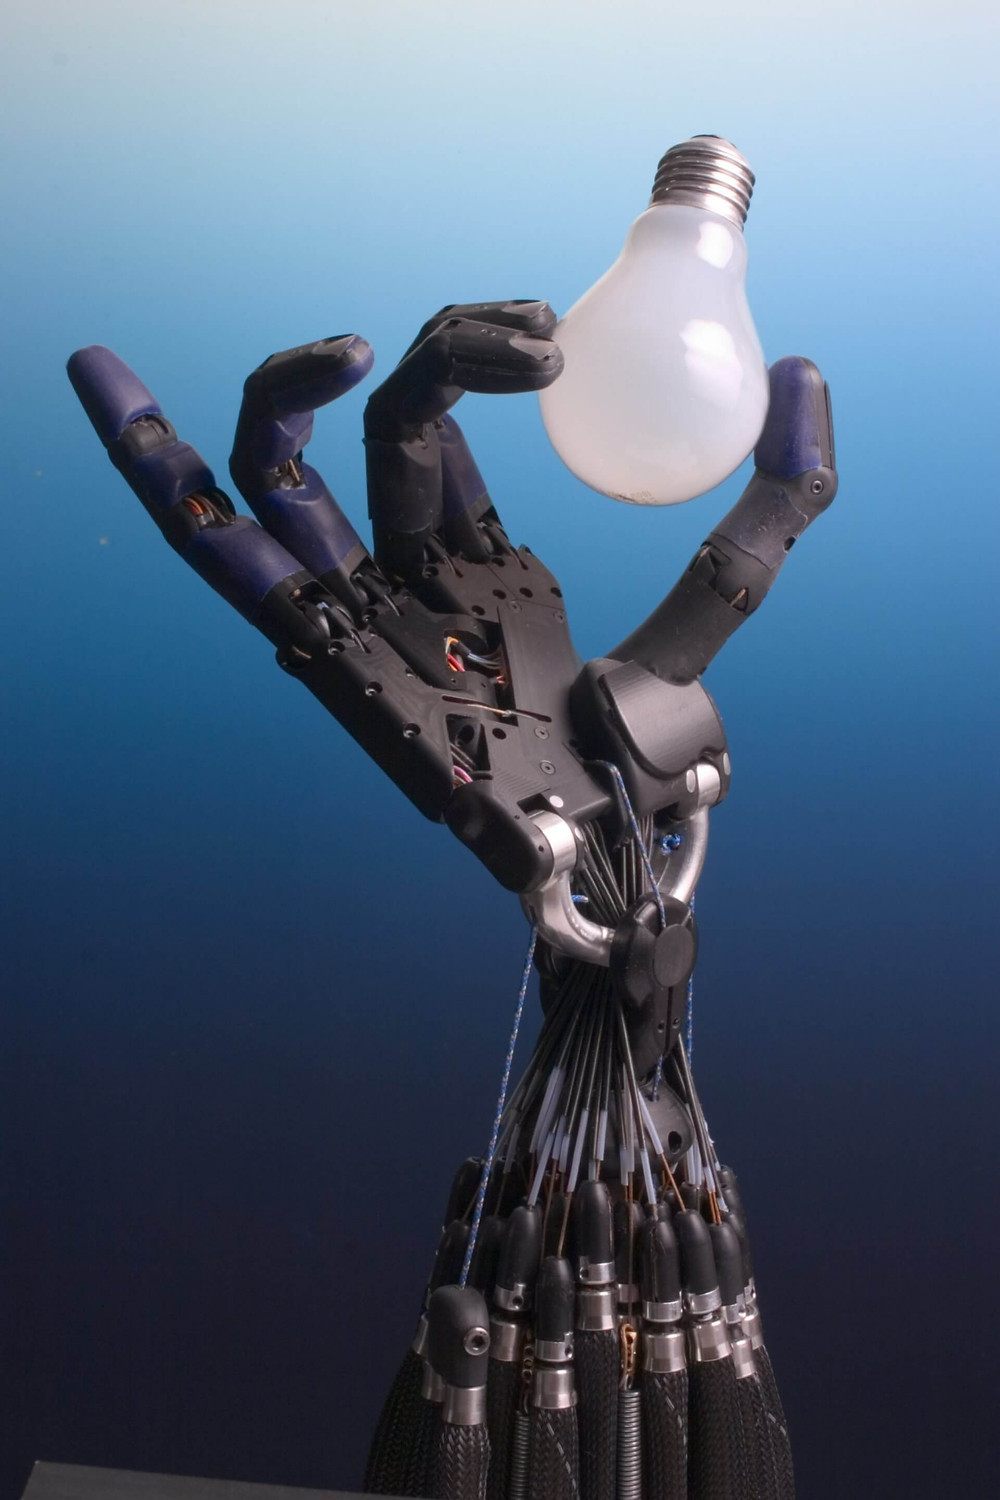 The Shadow robot hand system holding a glass light bulb